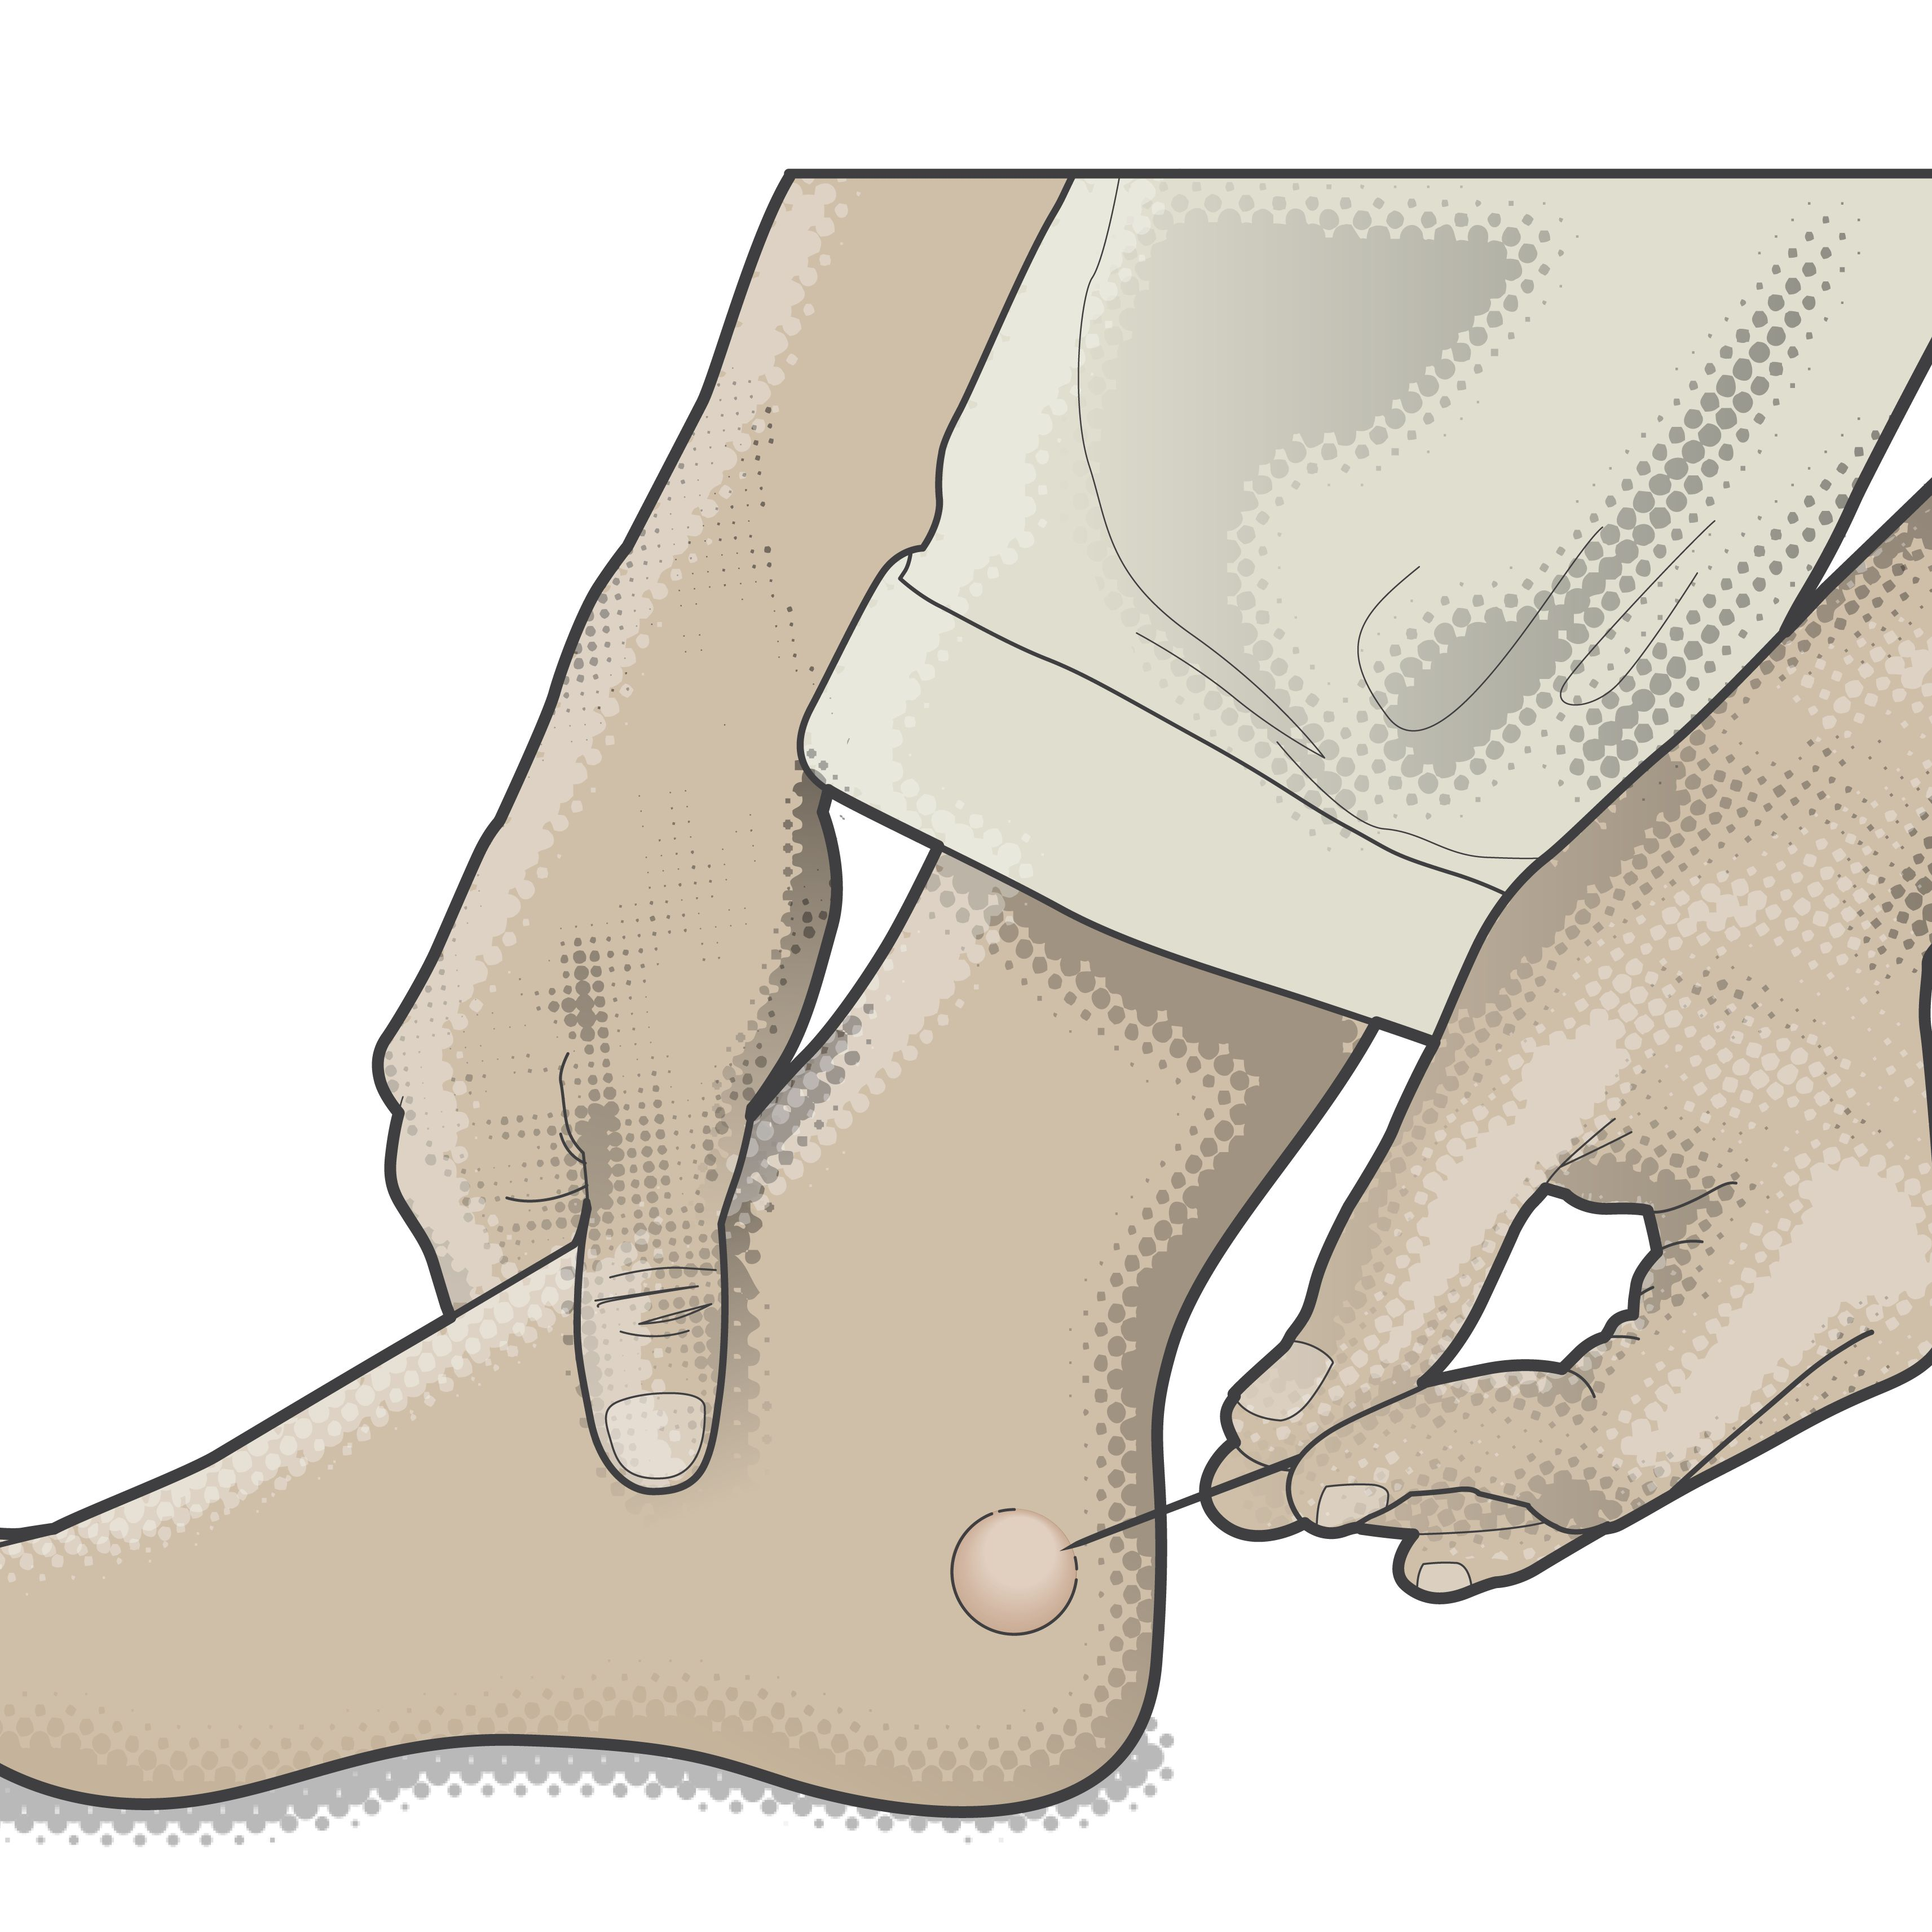 9 Common Rashes With Blisters